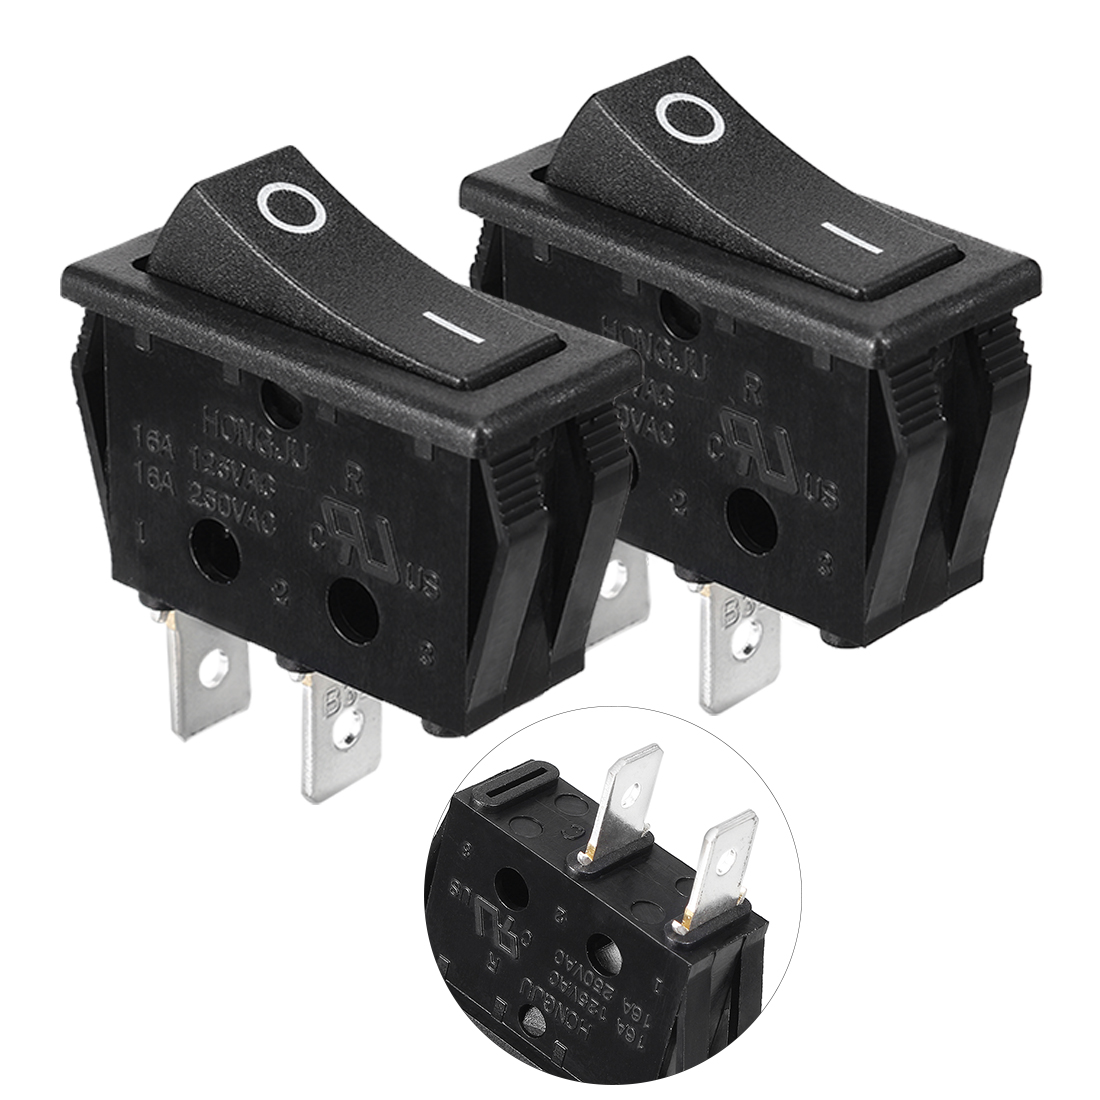 2 Pcs AC 16A/250V On/Off SPST Panel Mount Snap In Boat Rocker Switch UL Listed